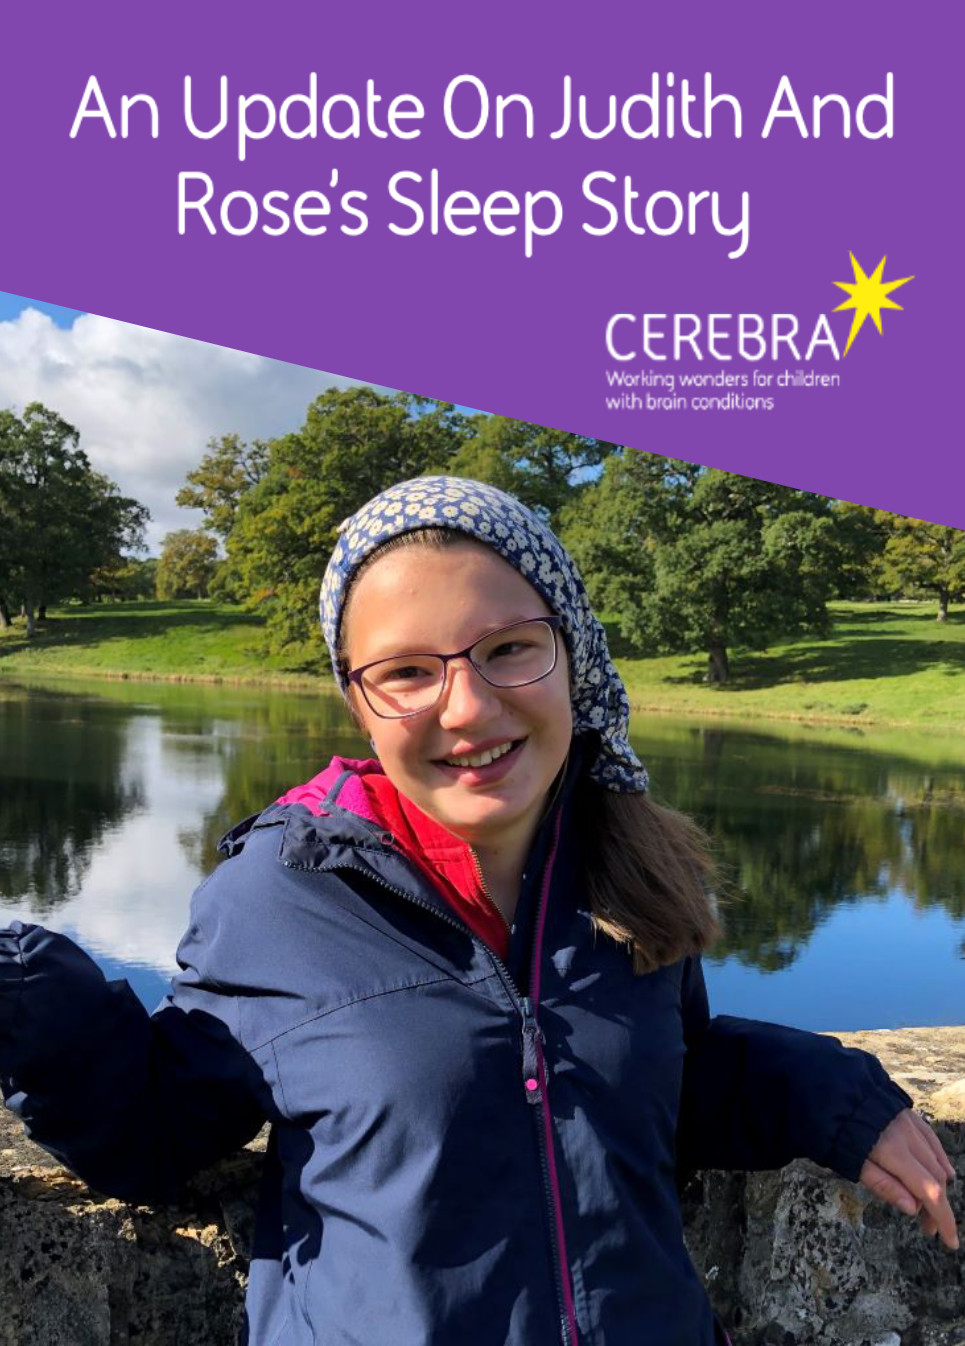 An Update On Judith And Rose's Sleep Story